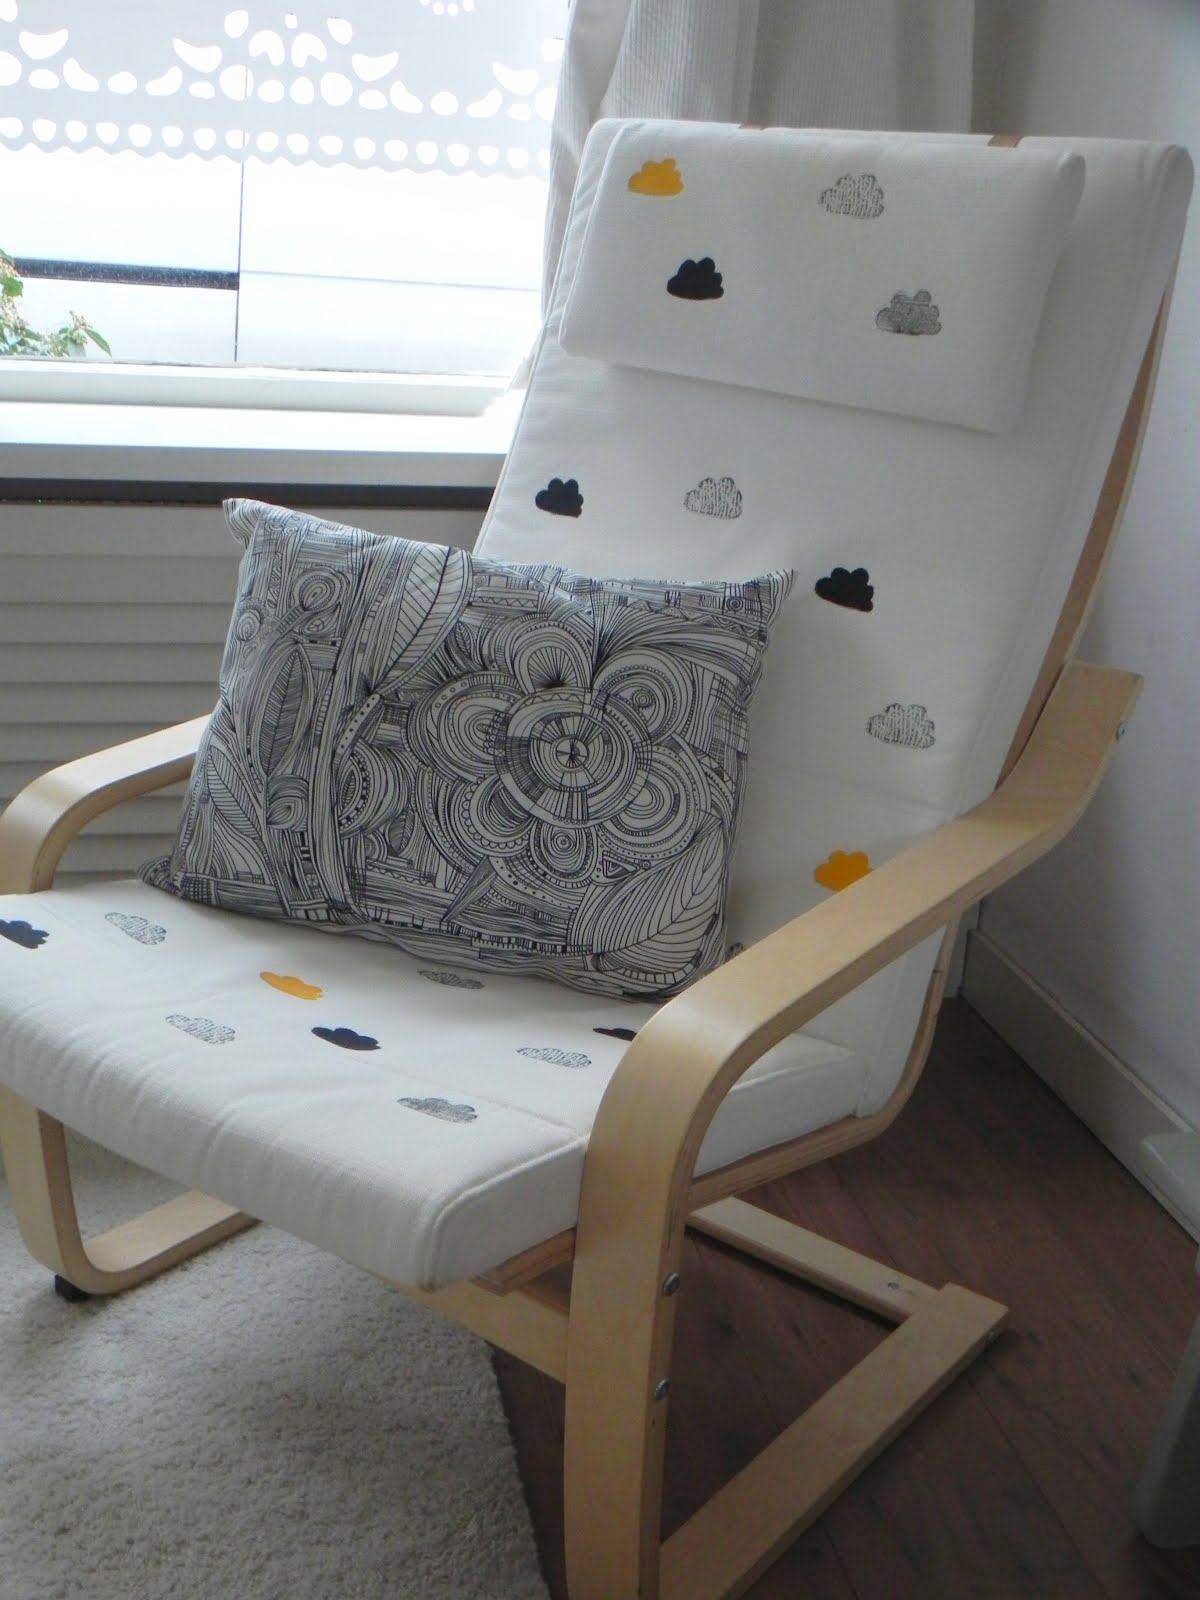 Home stamped ikea chair